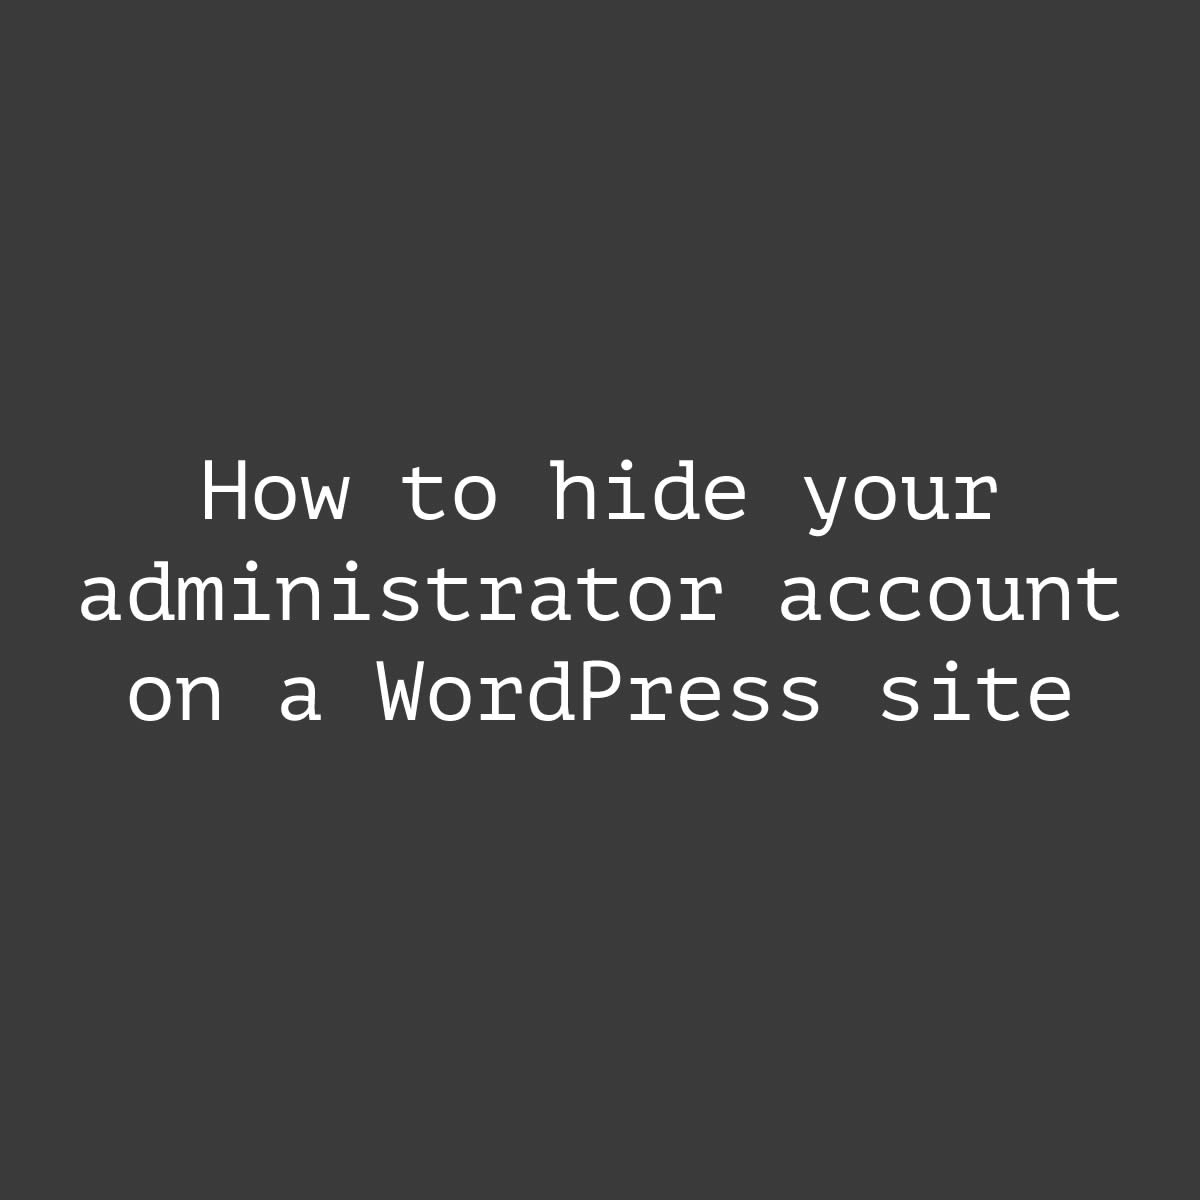 How to hide your administrator account on a WordPress site